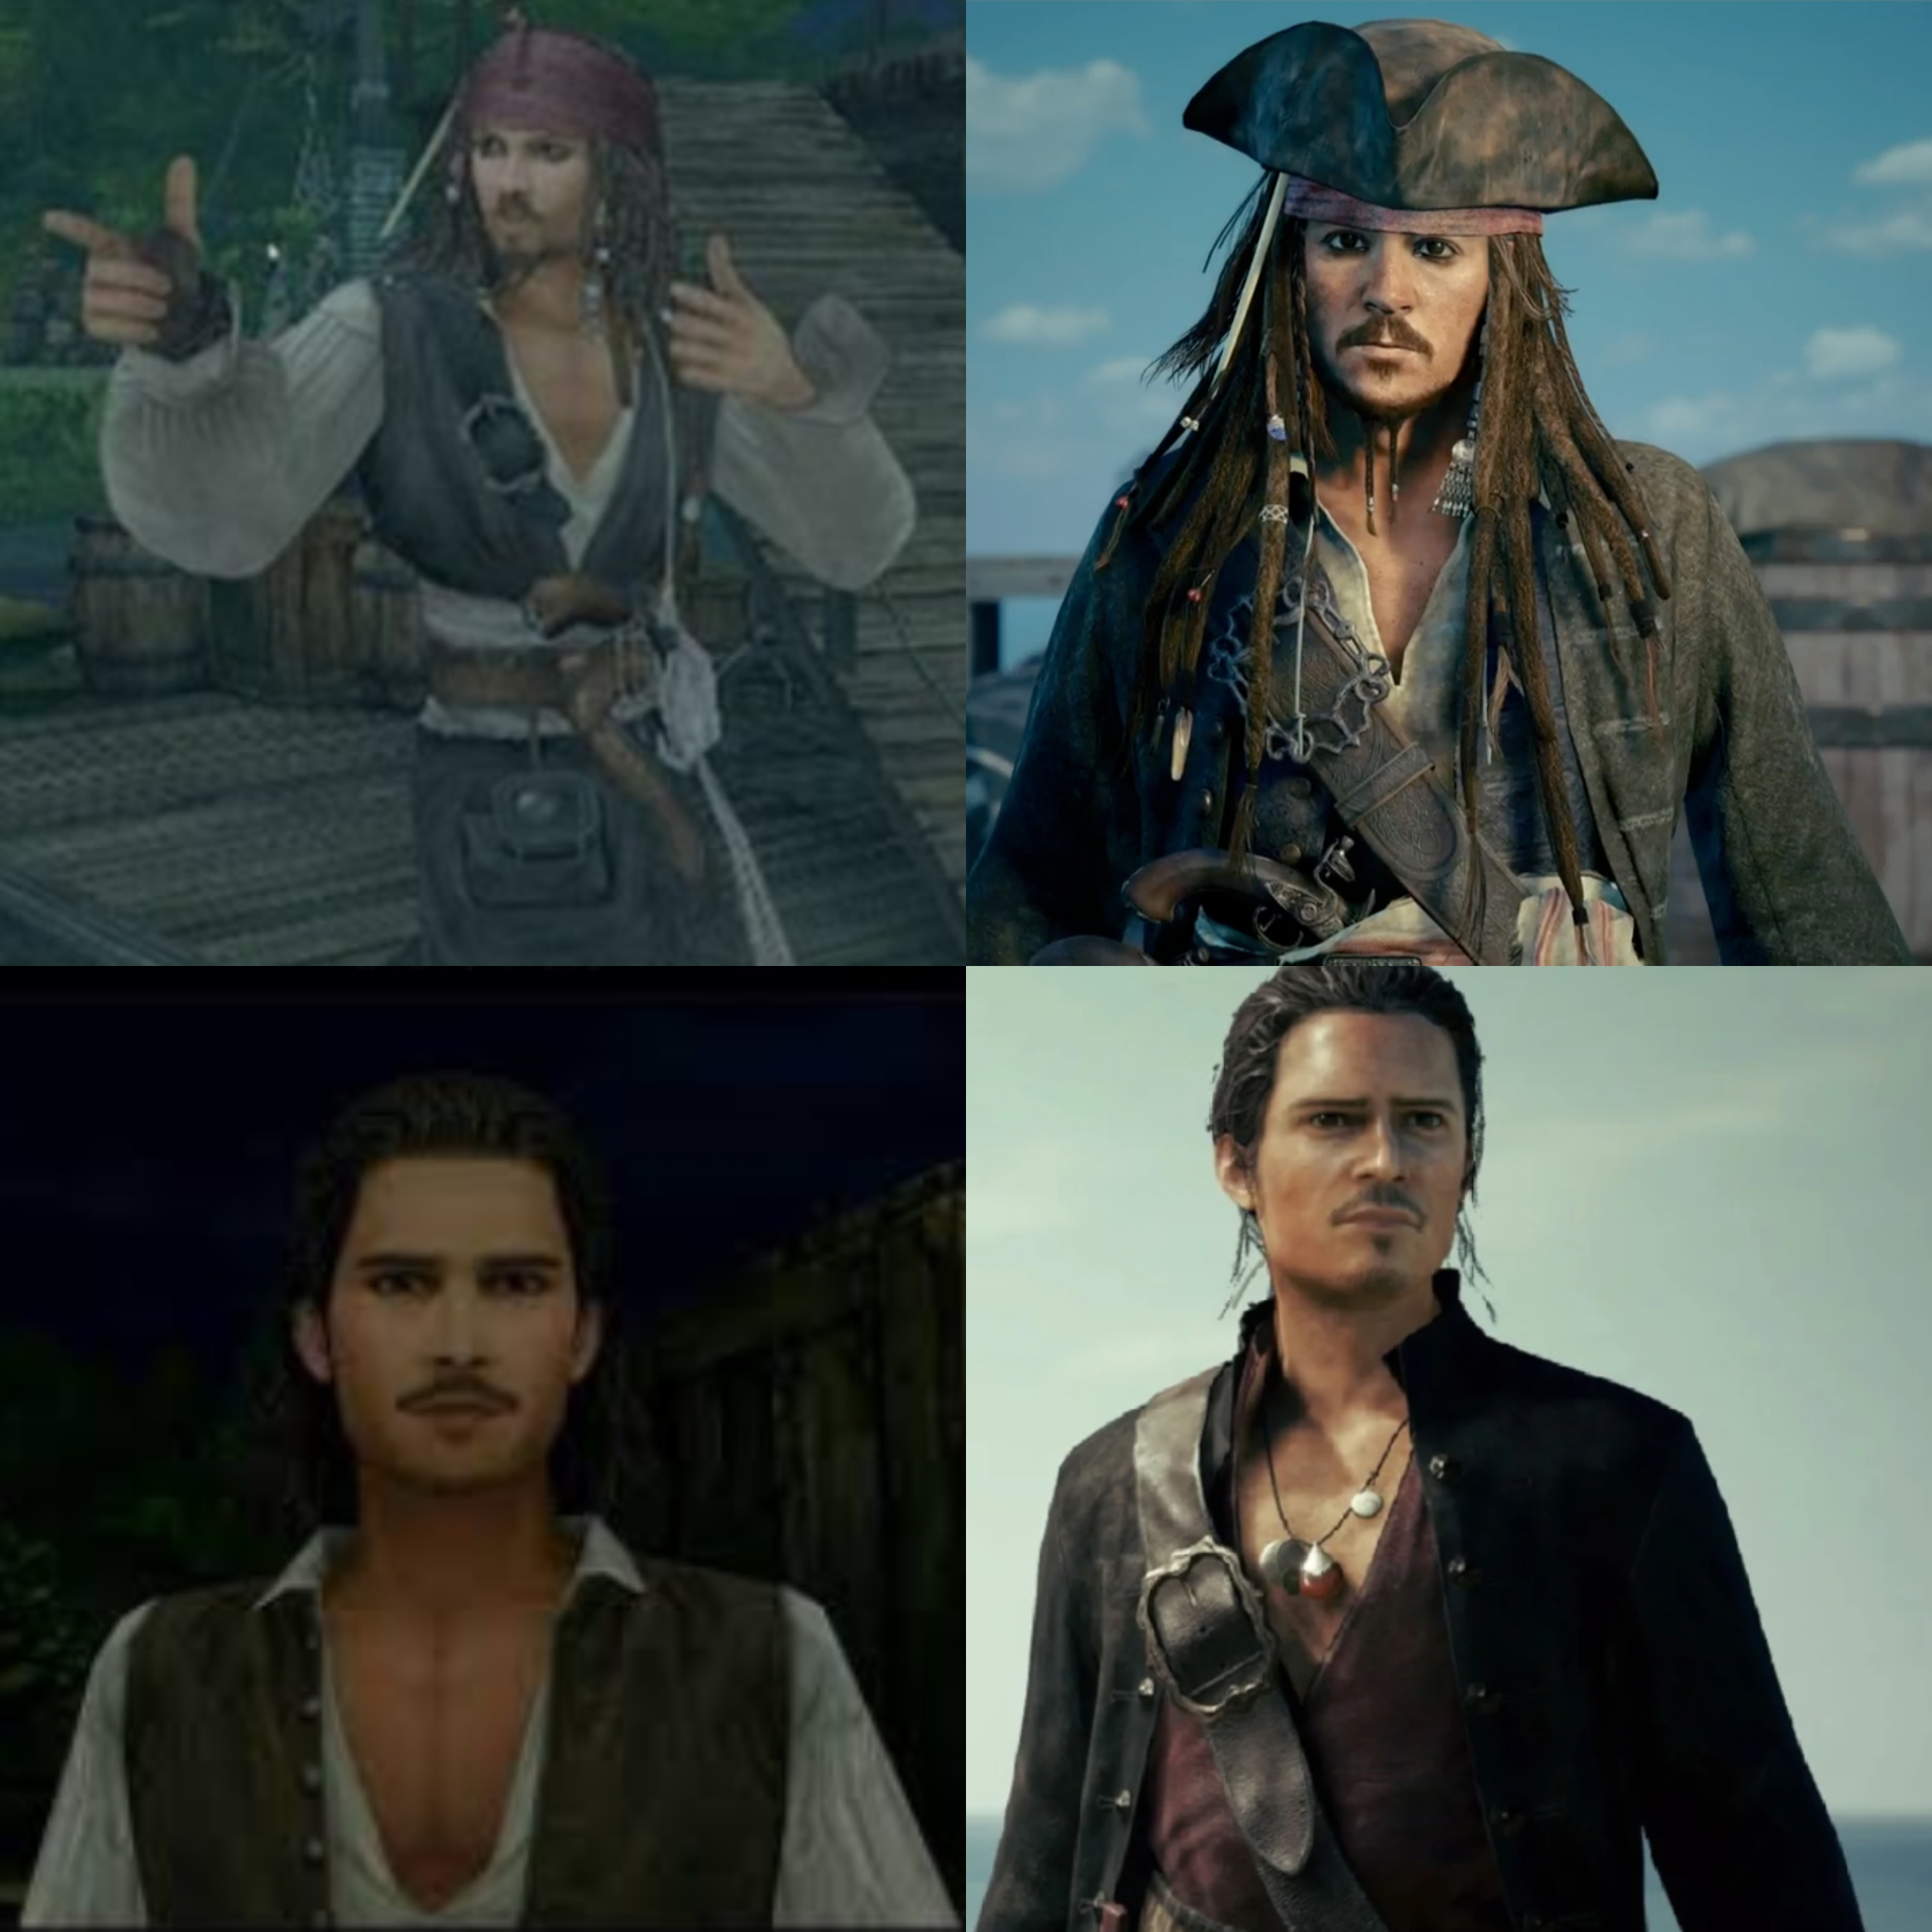 Jack Sparrow and Will Turner KH 3 Glow Up